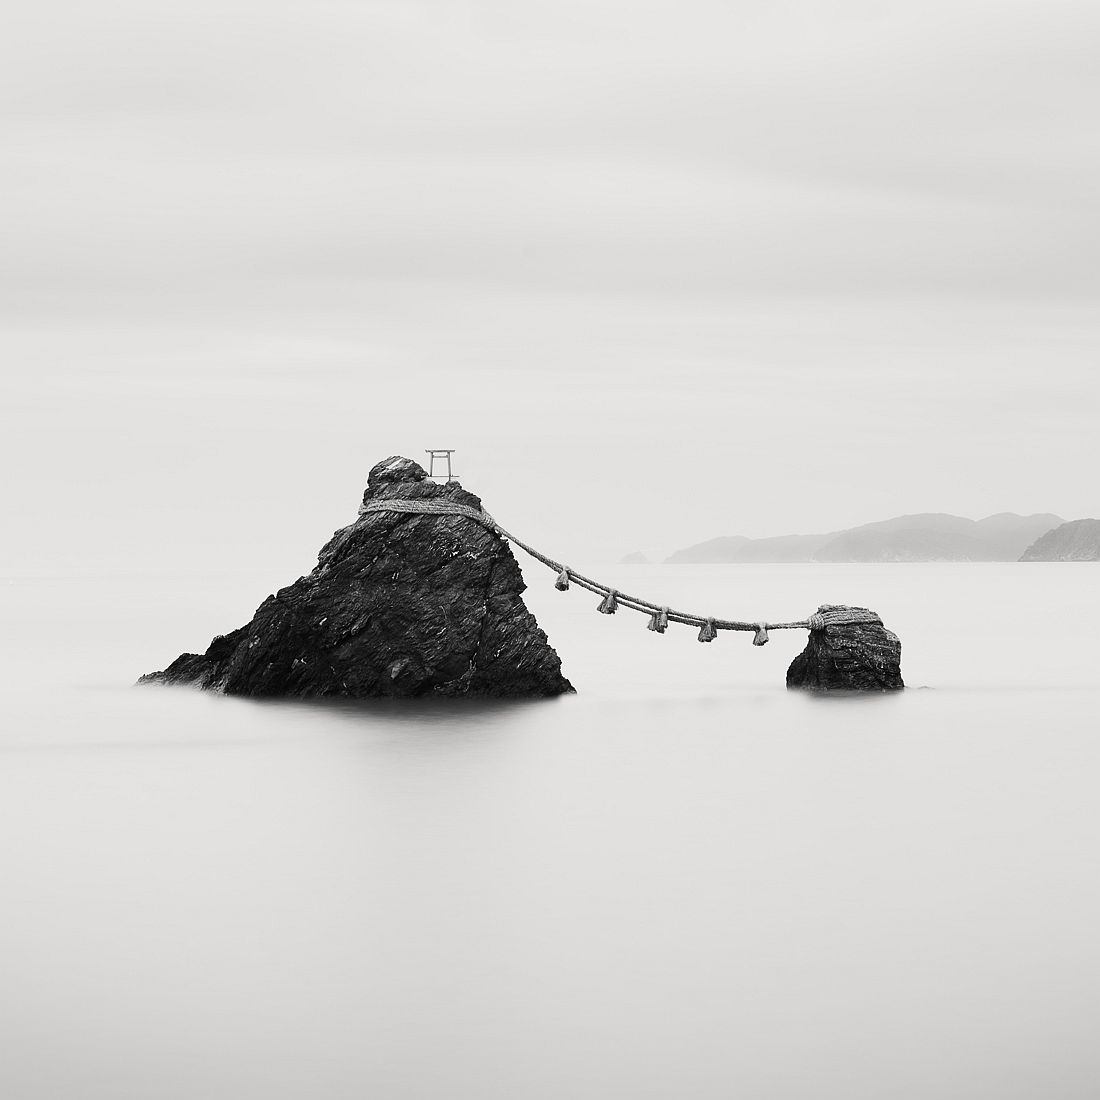 © Olivier Robert: Japan Coastlines / MonoVisions Awards 2017 winner